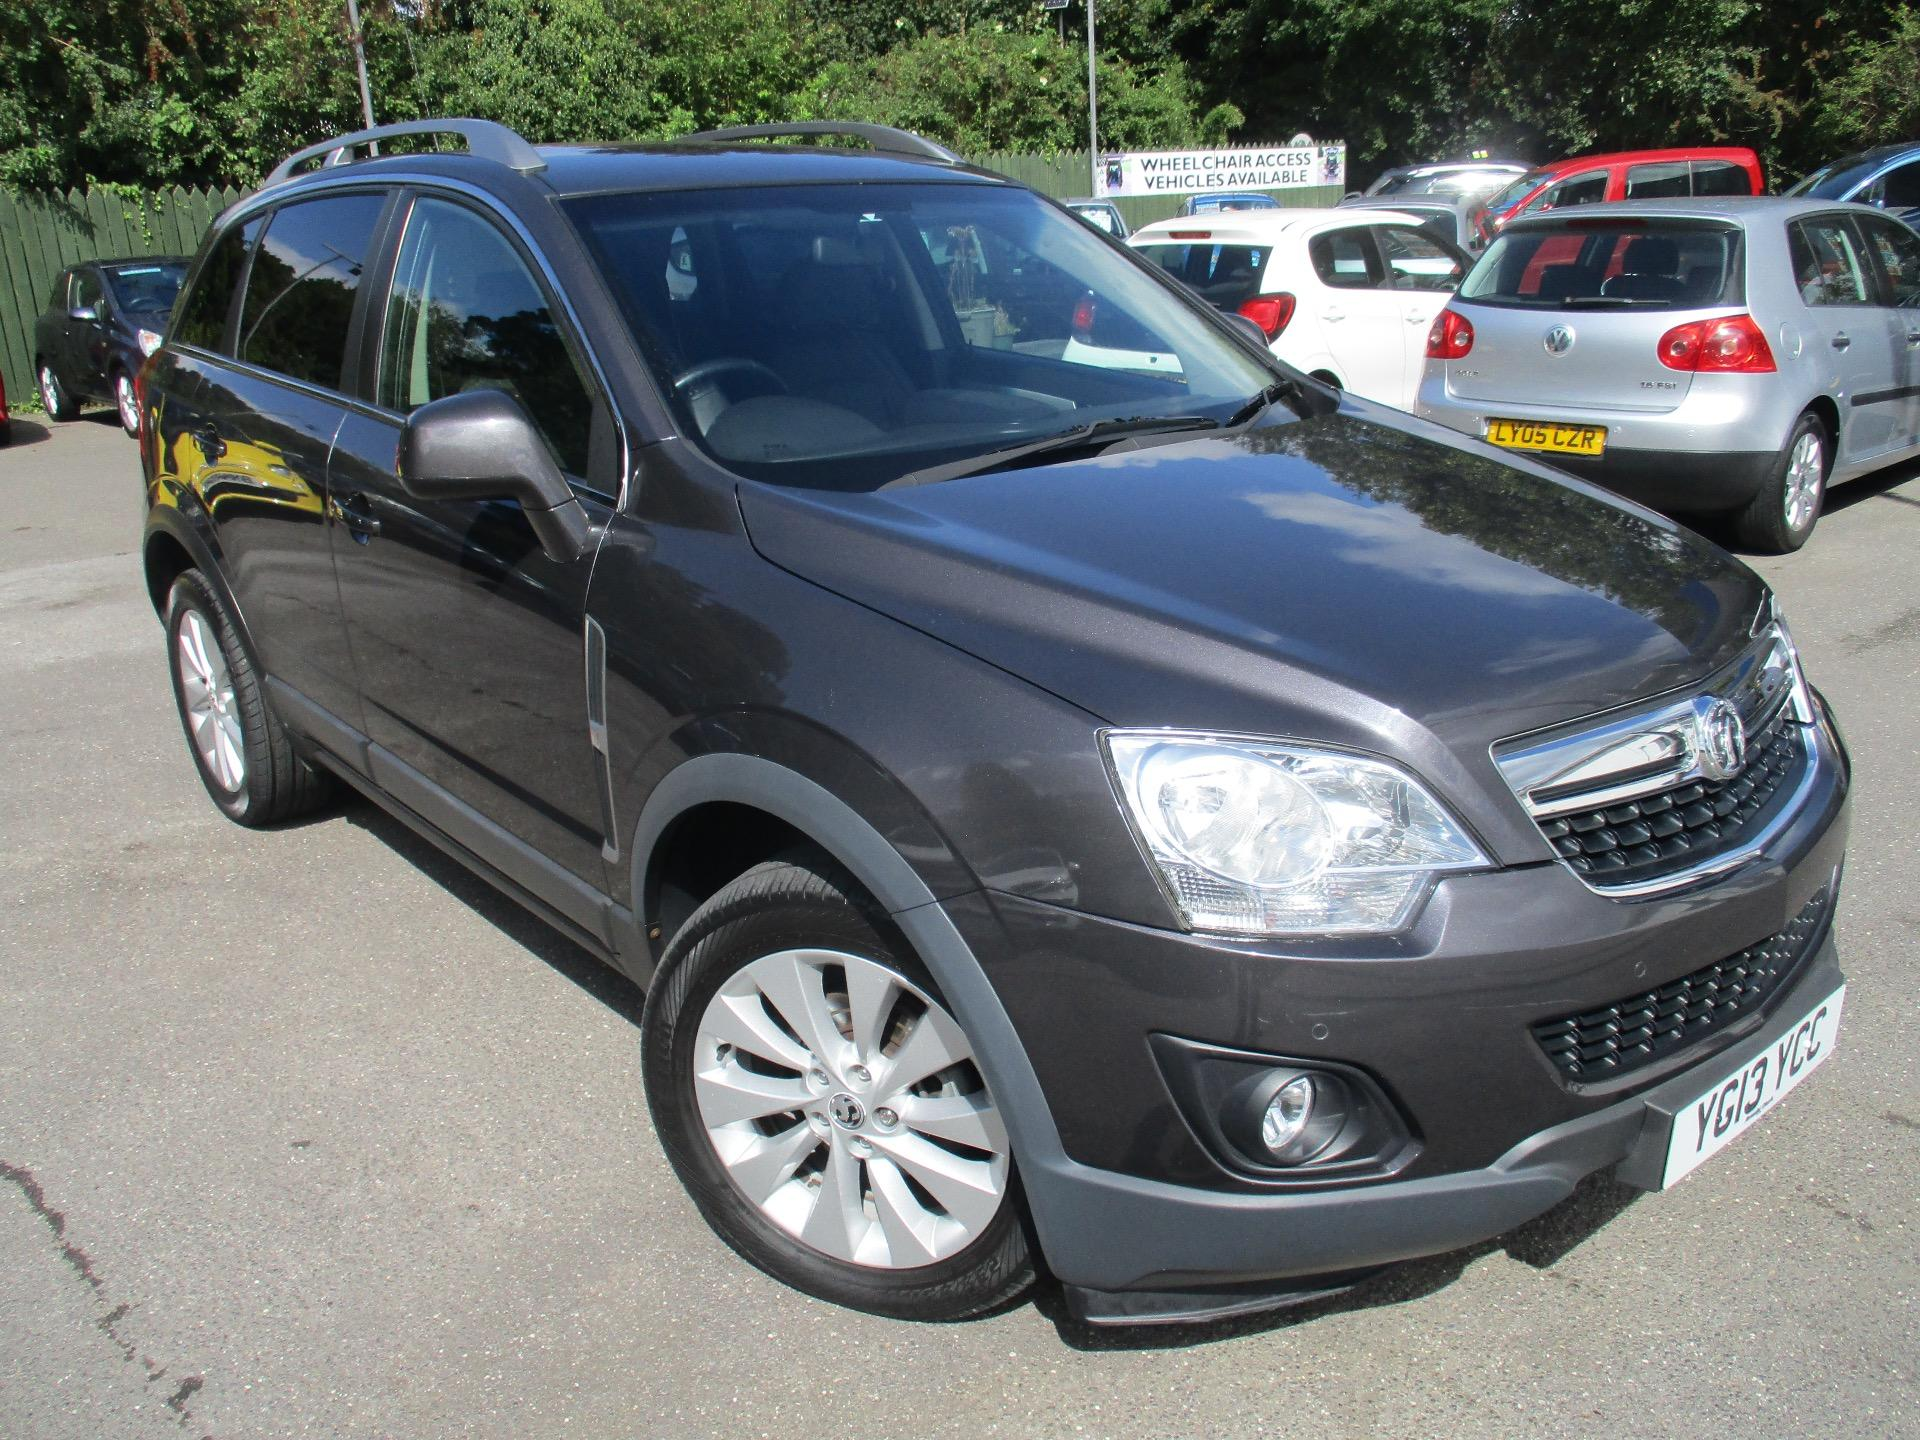 Vauxhall Antara 2.2 ANTERA DIAMOND CDTI 4x4 AUTOMATIC CAN DELIVER 07787150684 Hatchback Diesel Grey